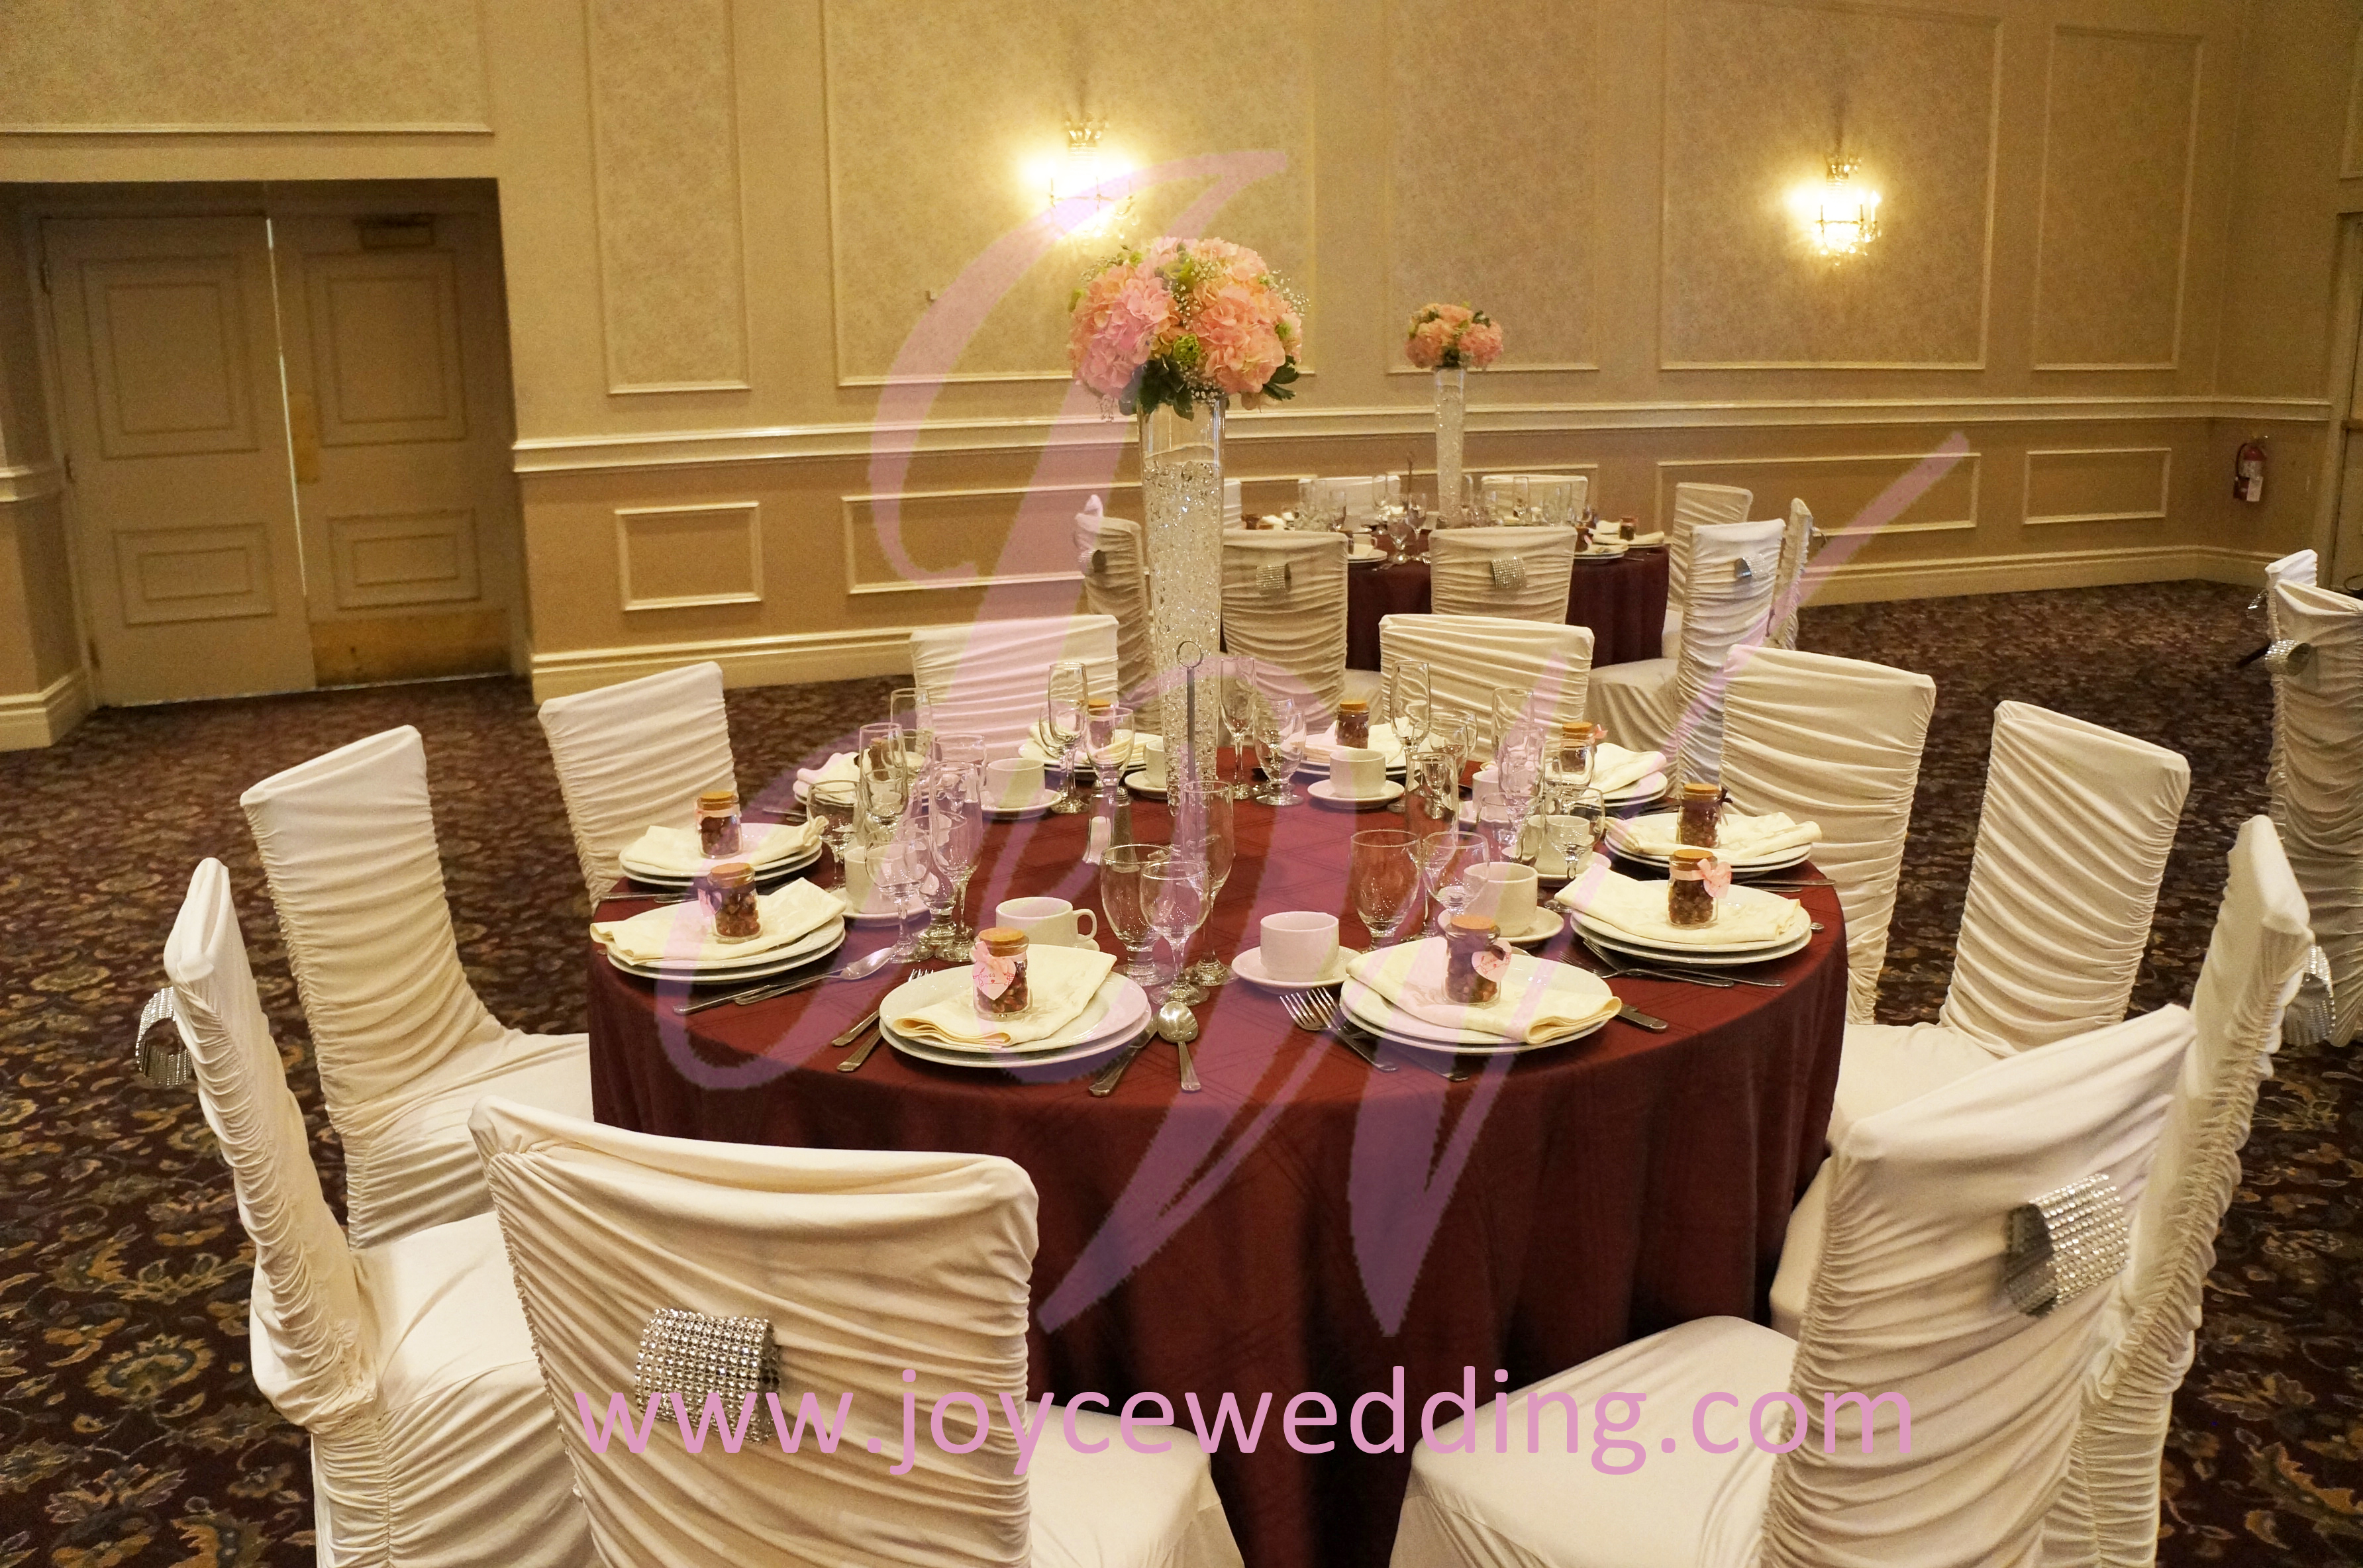 wedding chair covers reddit teak shower chairs benches pink red and white decoration joyce